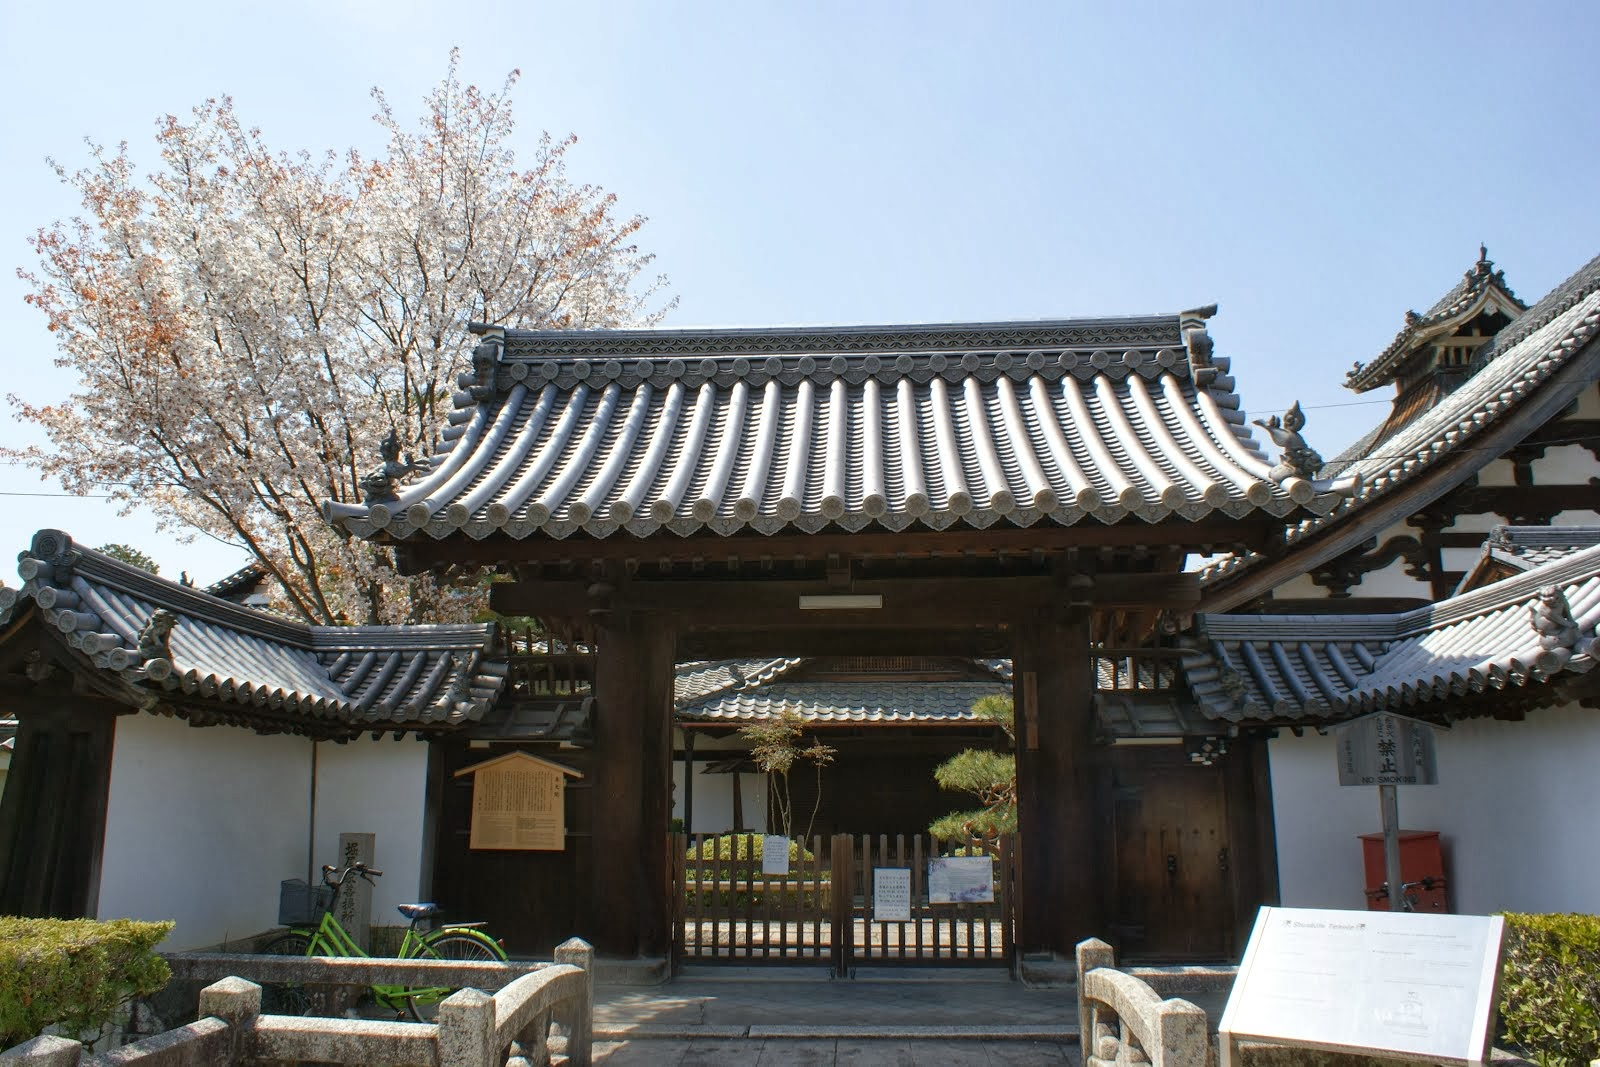 Shunkoin Temple's Main Gate